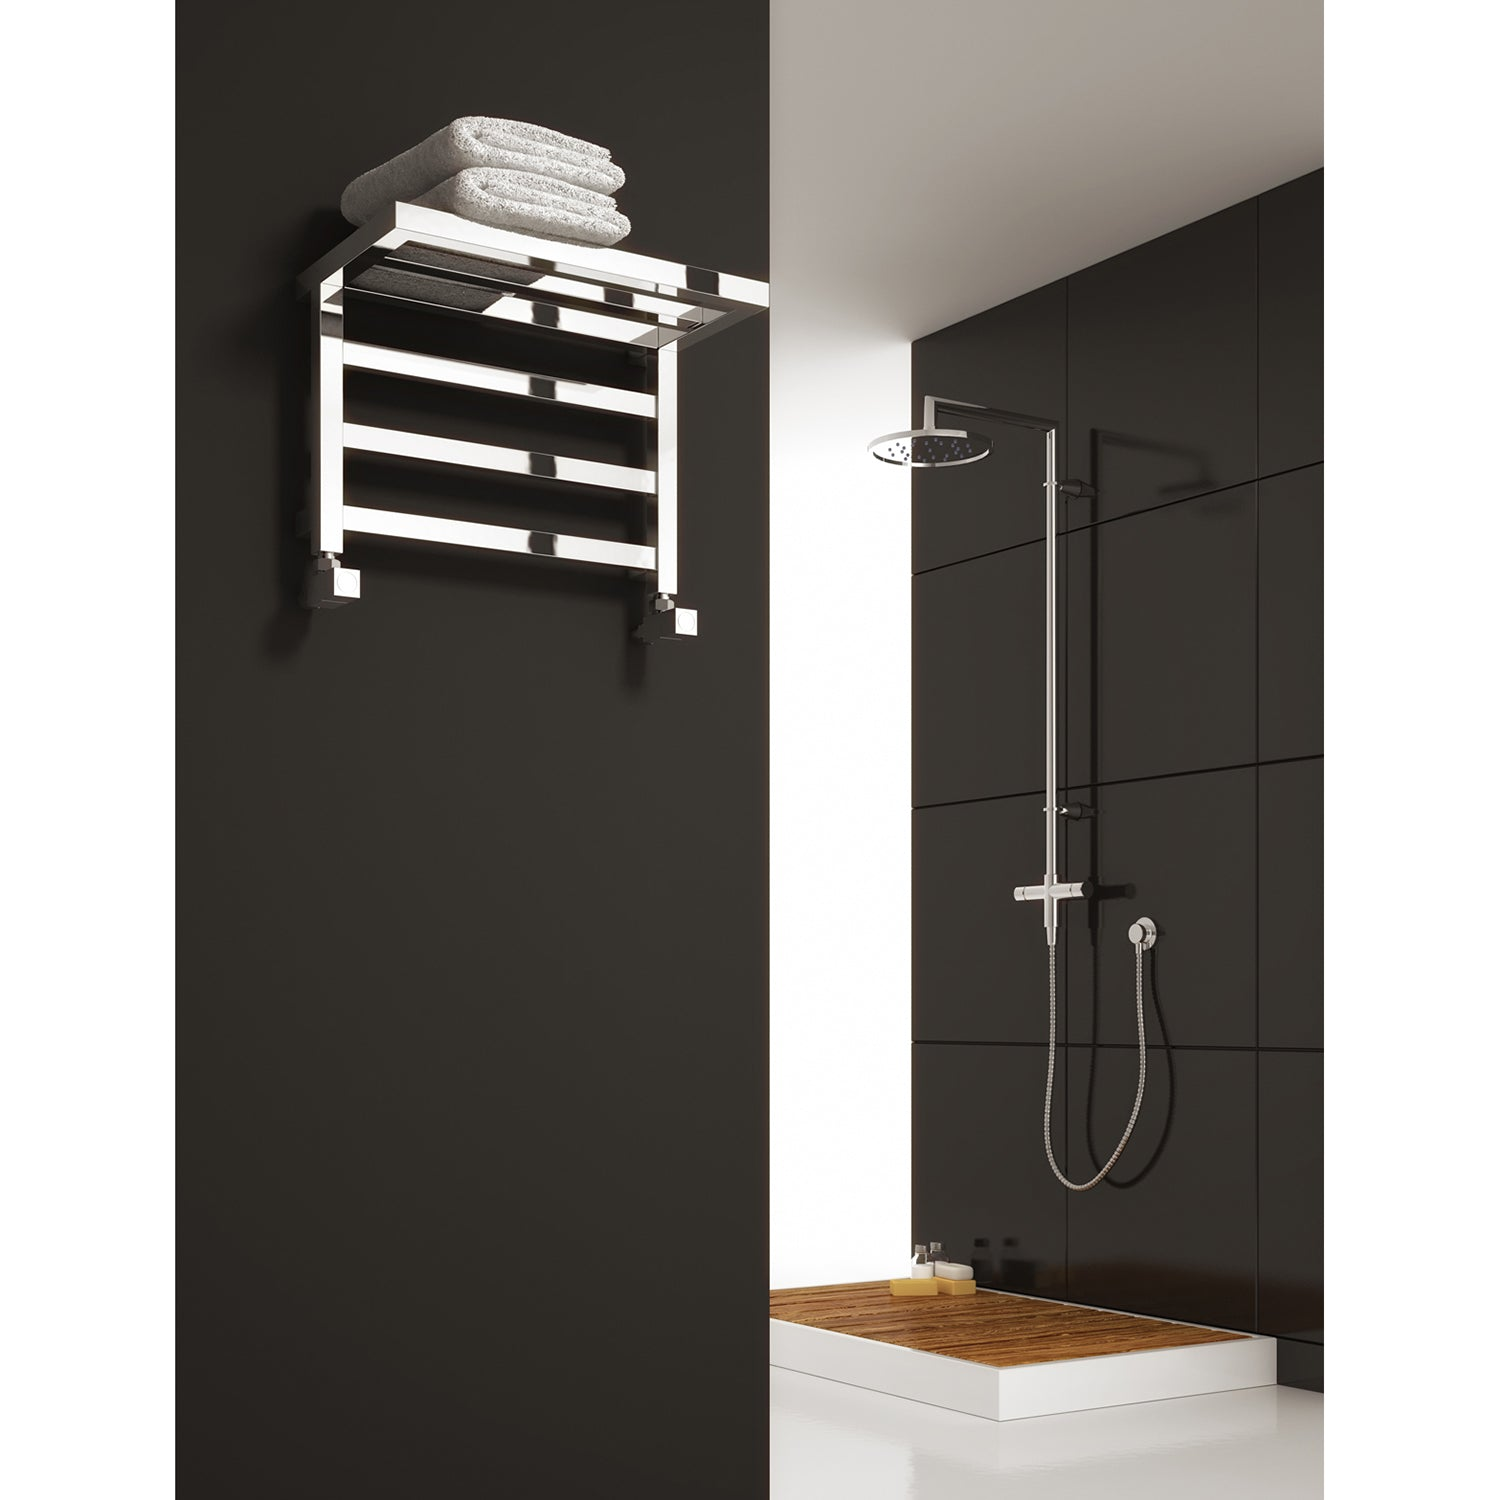 Reina Elvina Designer towel warmer Shelve